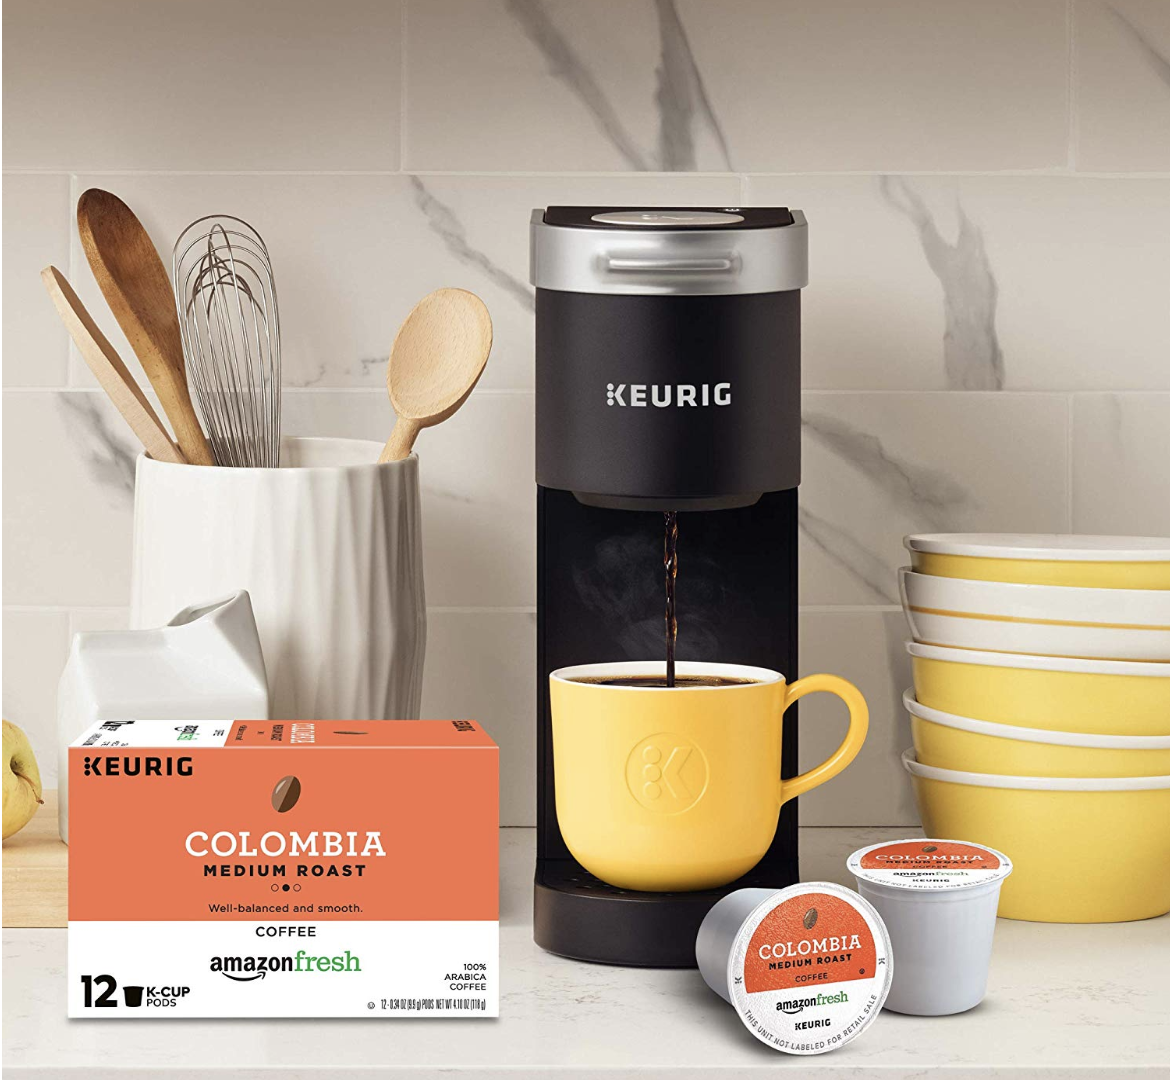 Keurig K-Mini Single Serve Coffee Maker with AmazonFresh K-Cups Coffee Pods - $49.99 (Down From $79.98)